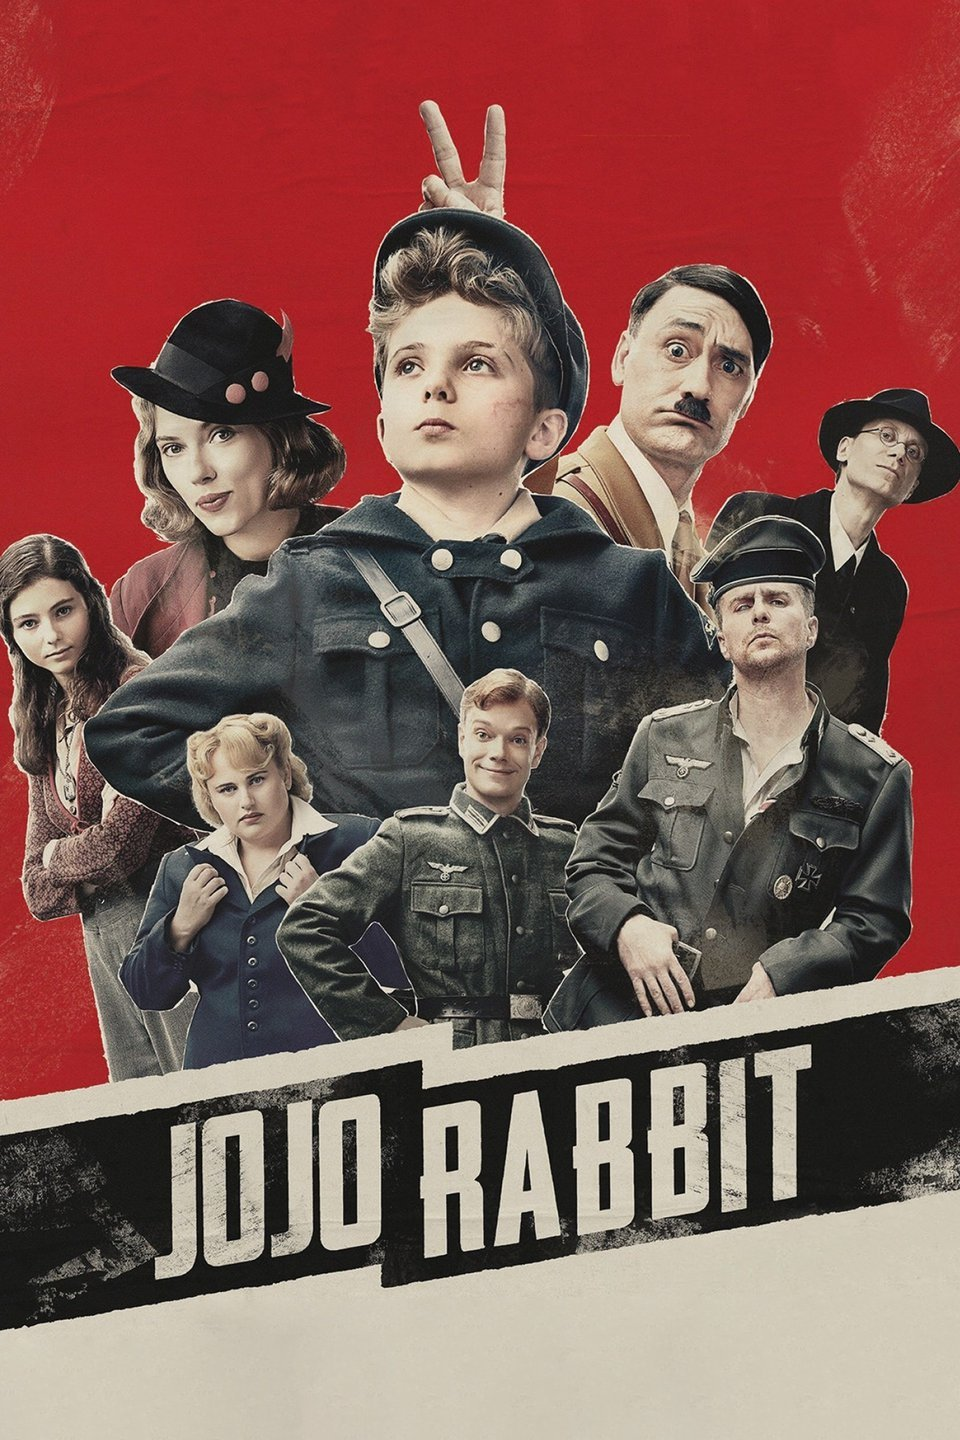 """Jojo Rabbit premiered at the 2019 Toronto International Film Festival with mixed reviews. Rotten Tomatoes' critic consensus says """"[Its] blend of irreverent humor and serious ideas definitely won't be to everyone's taste—but either way, this anti-hate satire is audacious to a fault."""""""